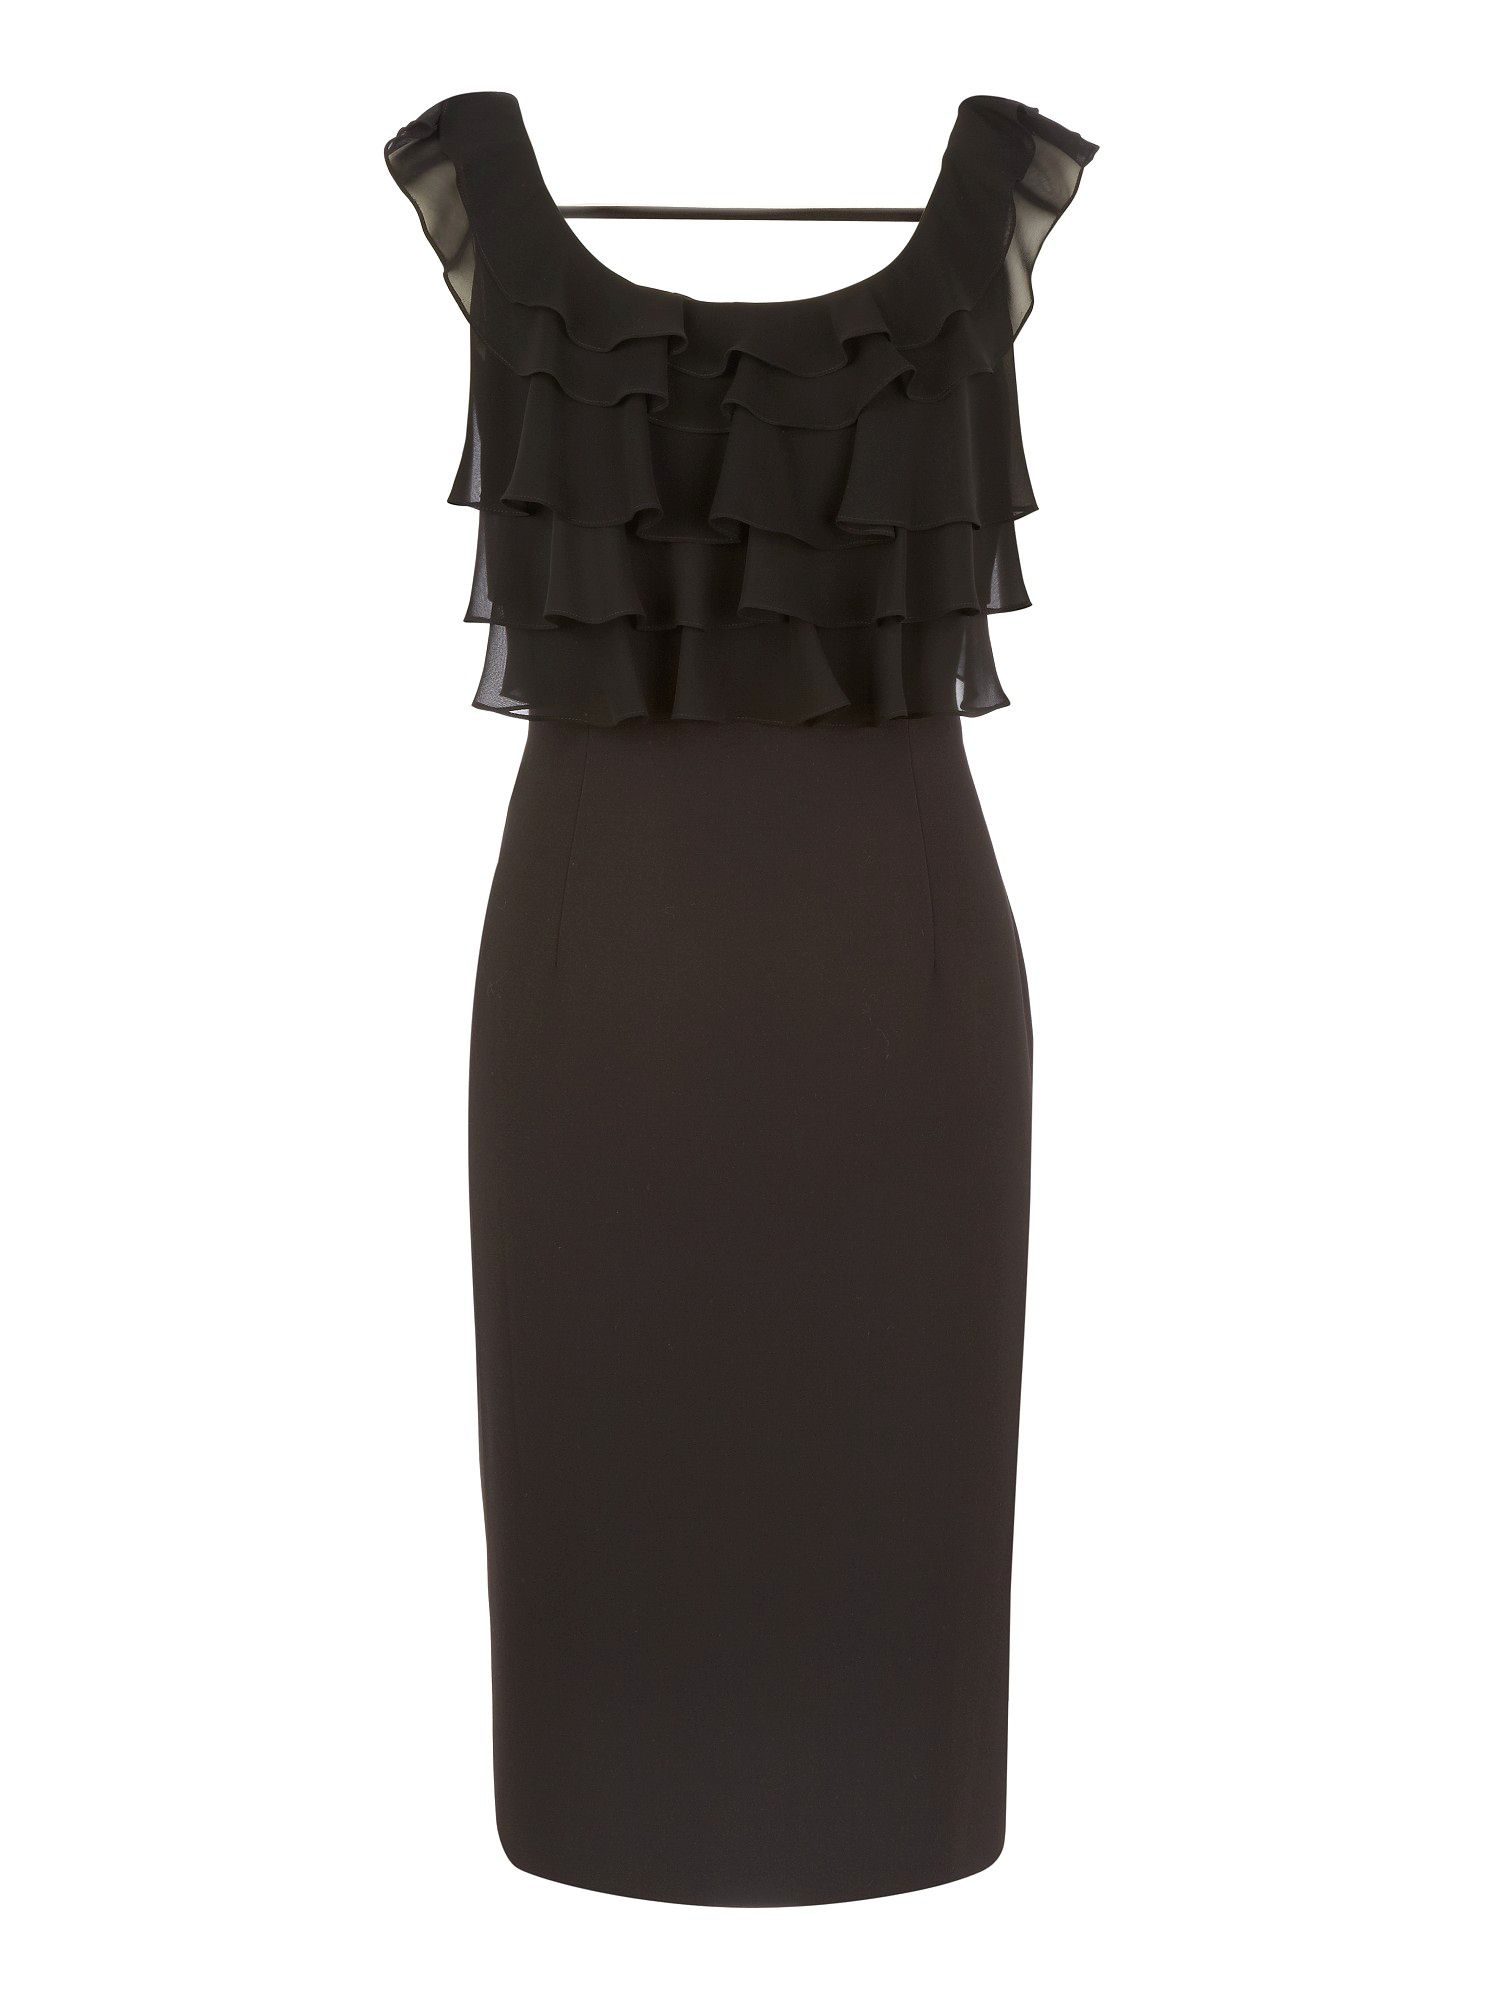 Black ruffle front dress